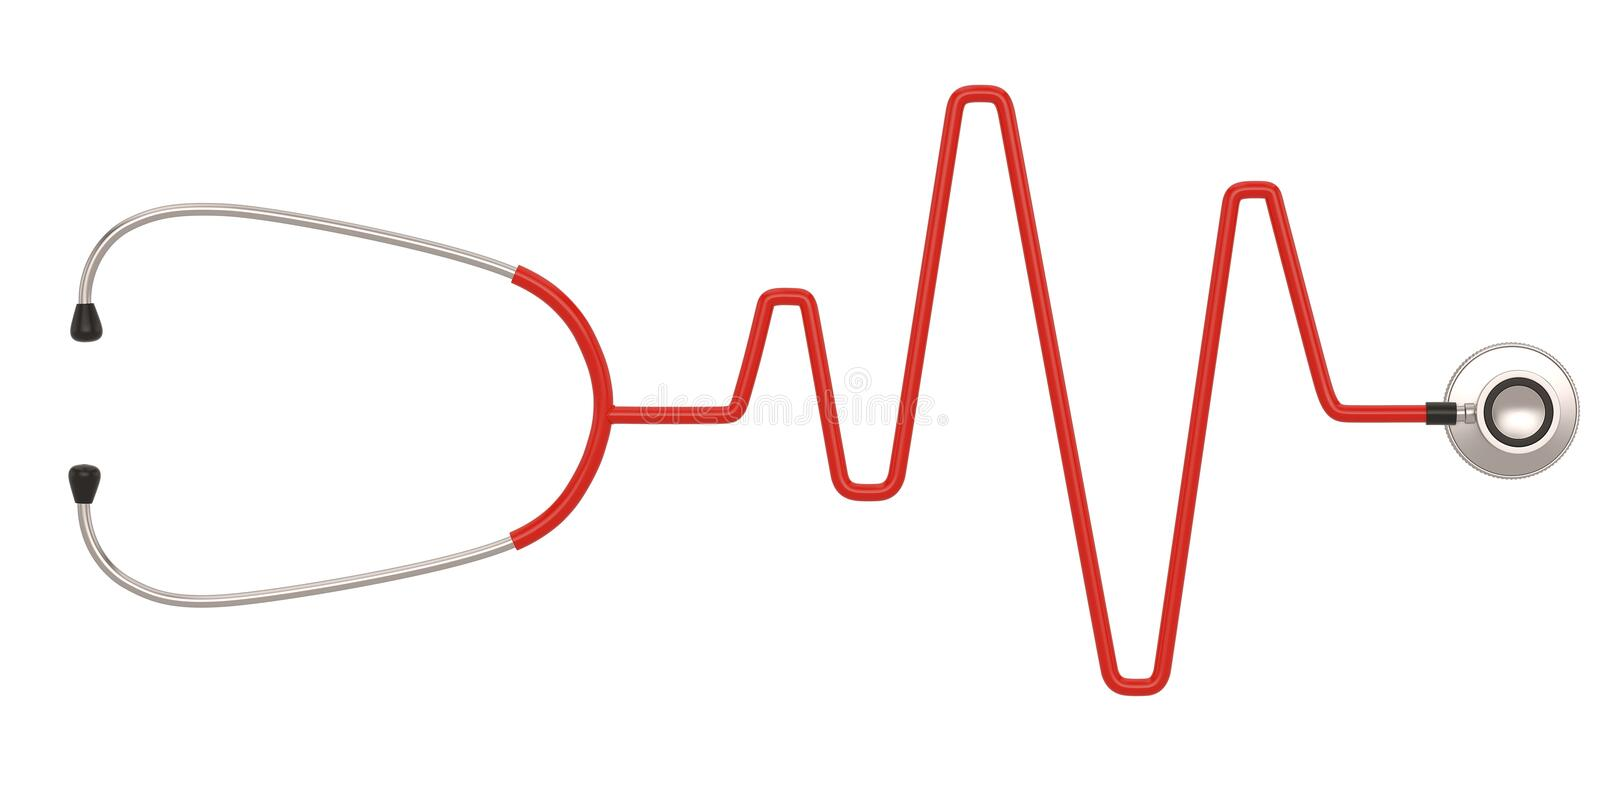 Stethoscope and a silhouette of the heart and ecg. 3D illustration stock illustration